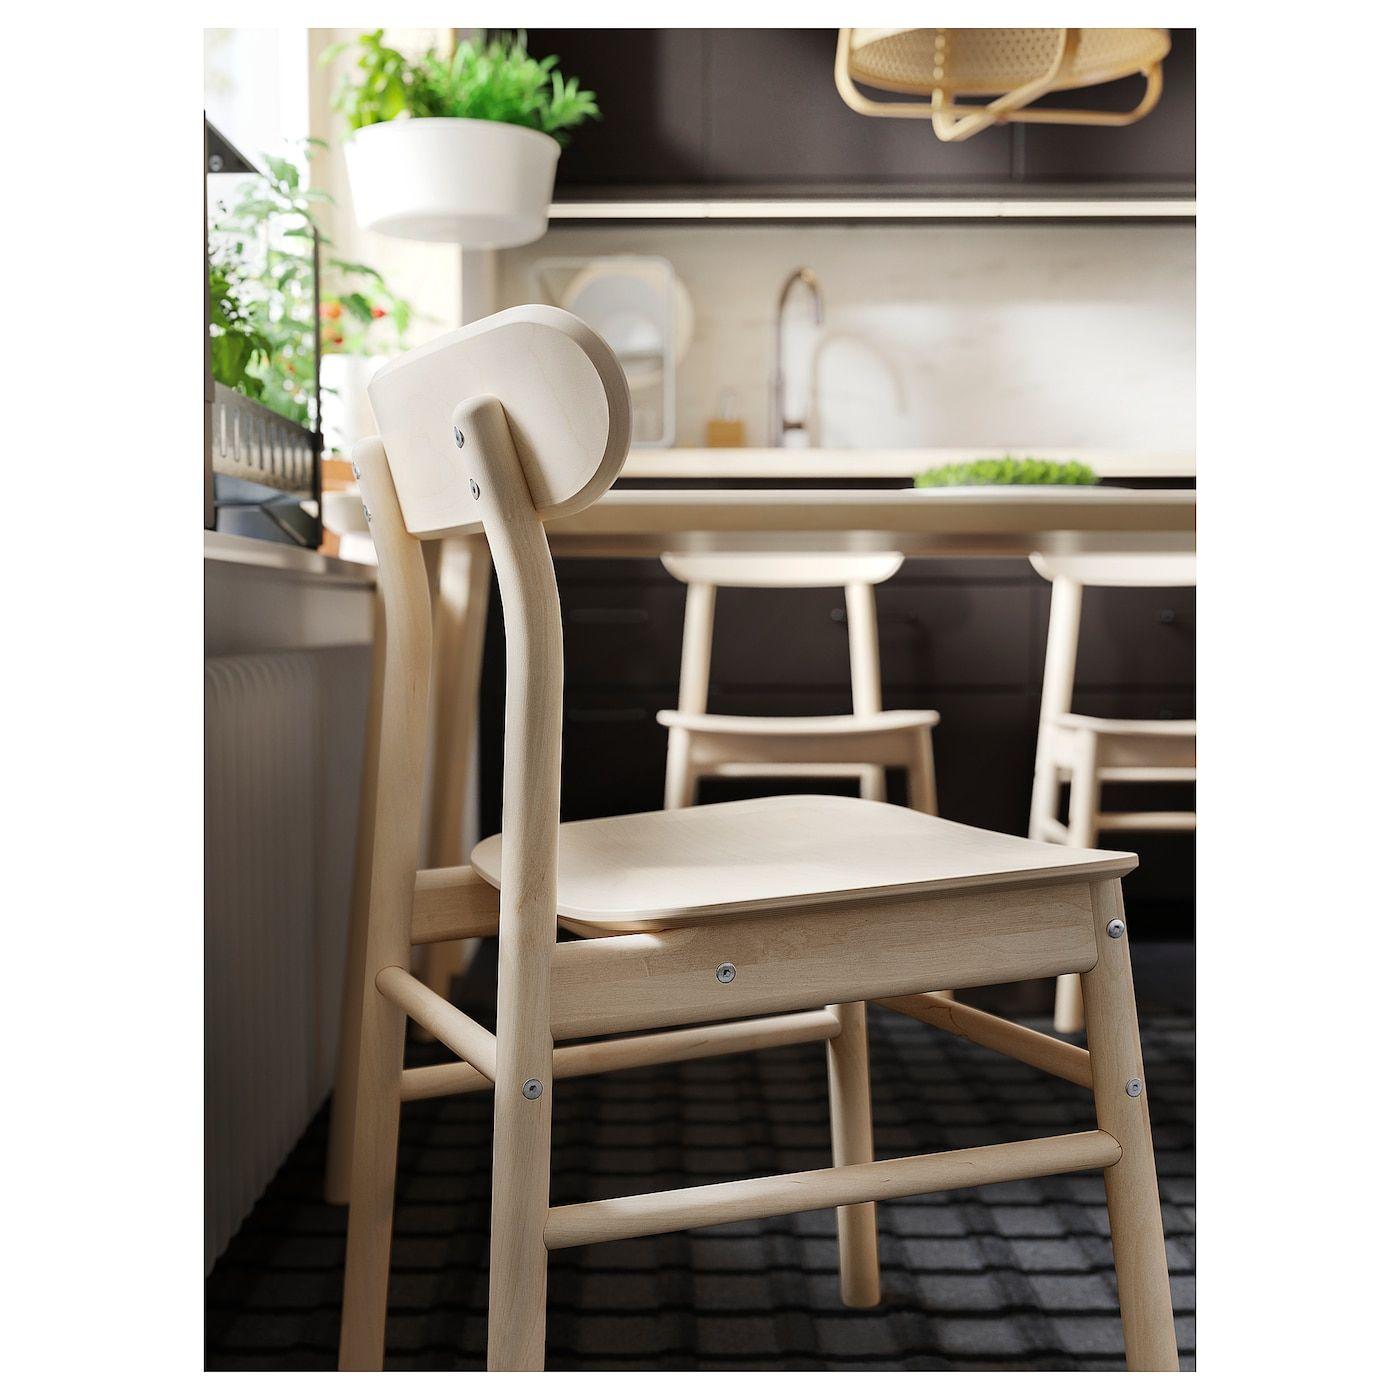 Rustic Hardwood Flooring Tips And Suggestion: IKEA NORDVIKEN / RONNINGE White, Birch Table And 4 Chairs